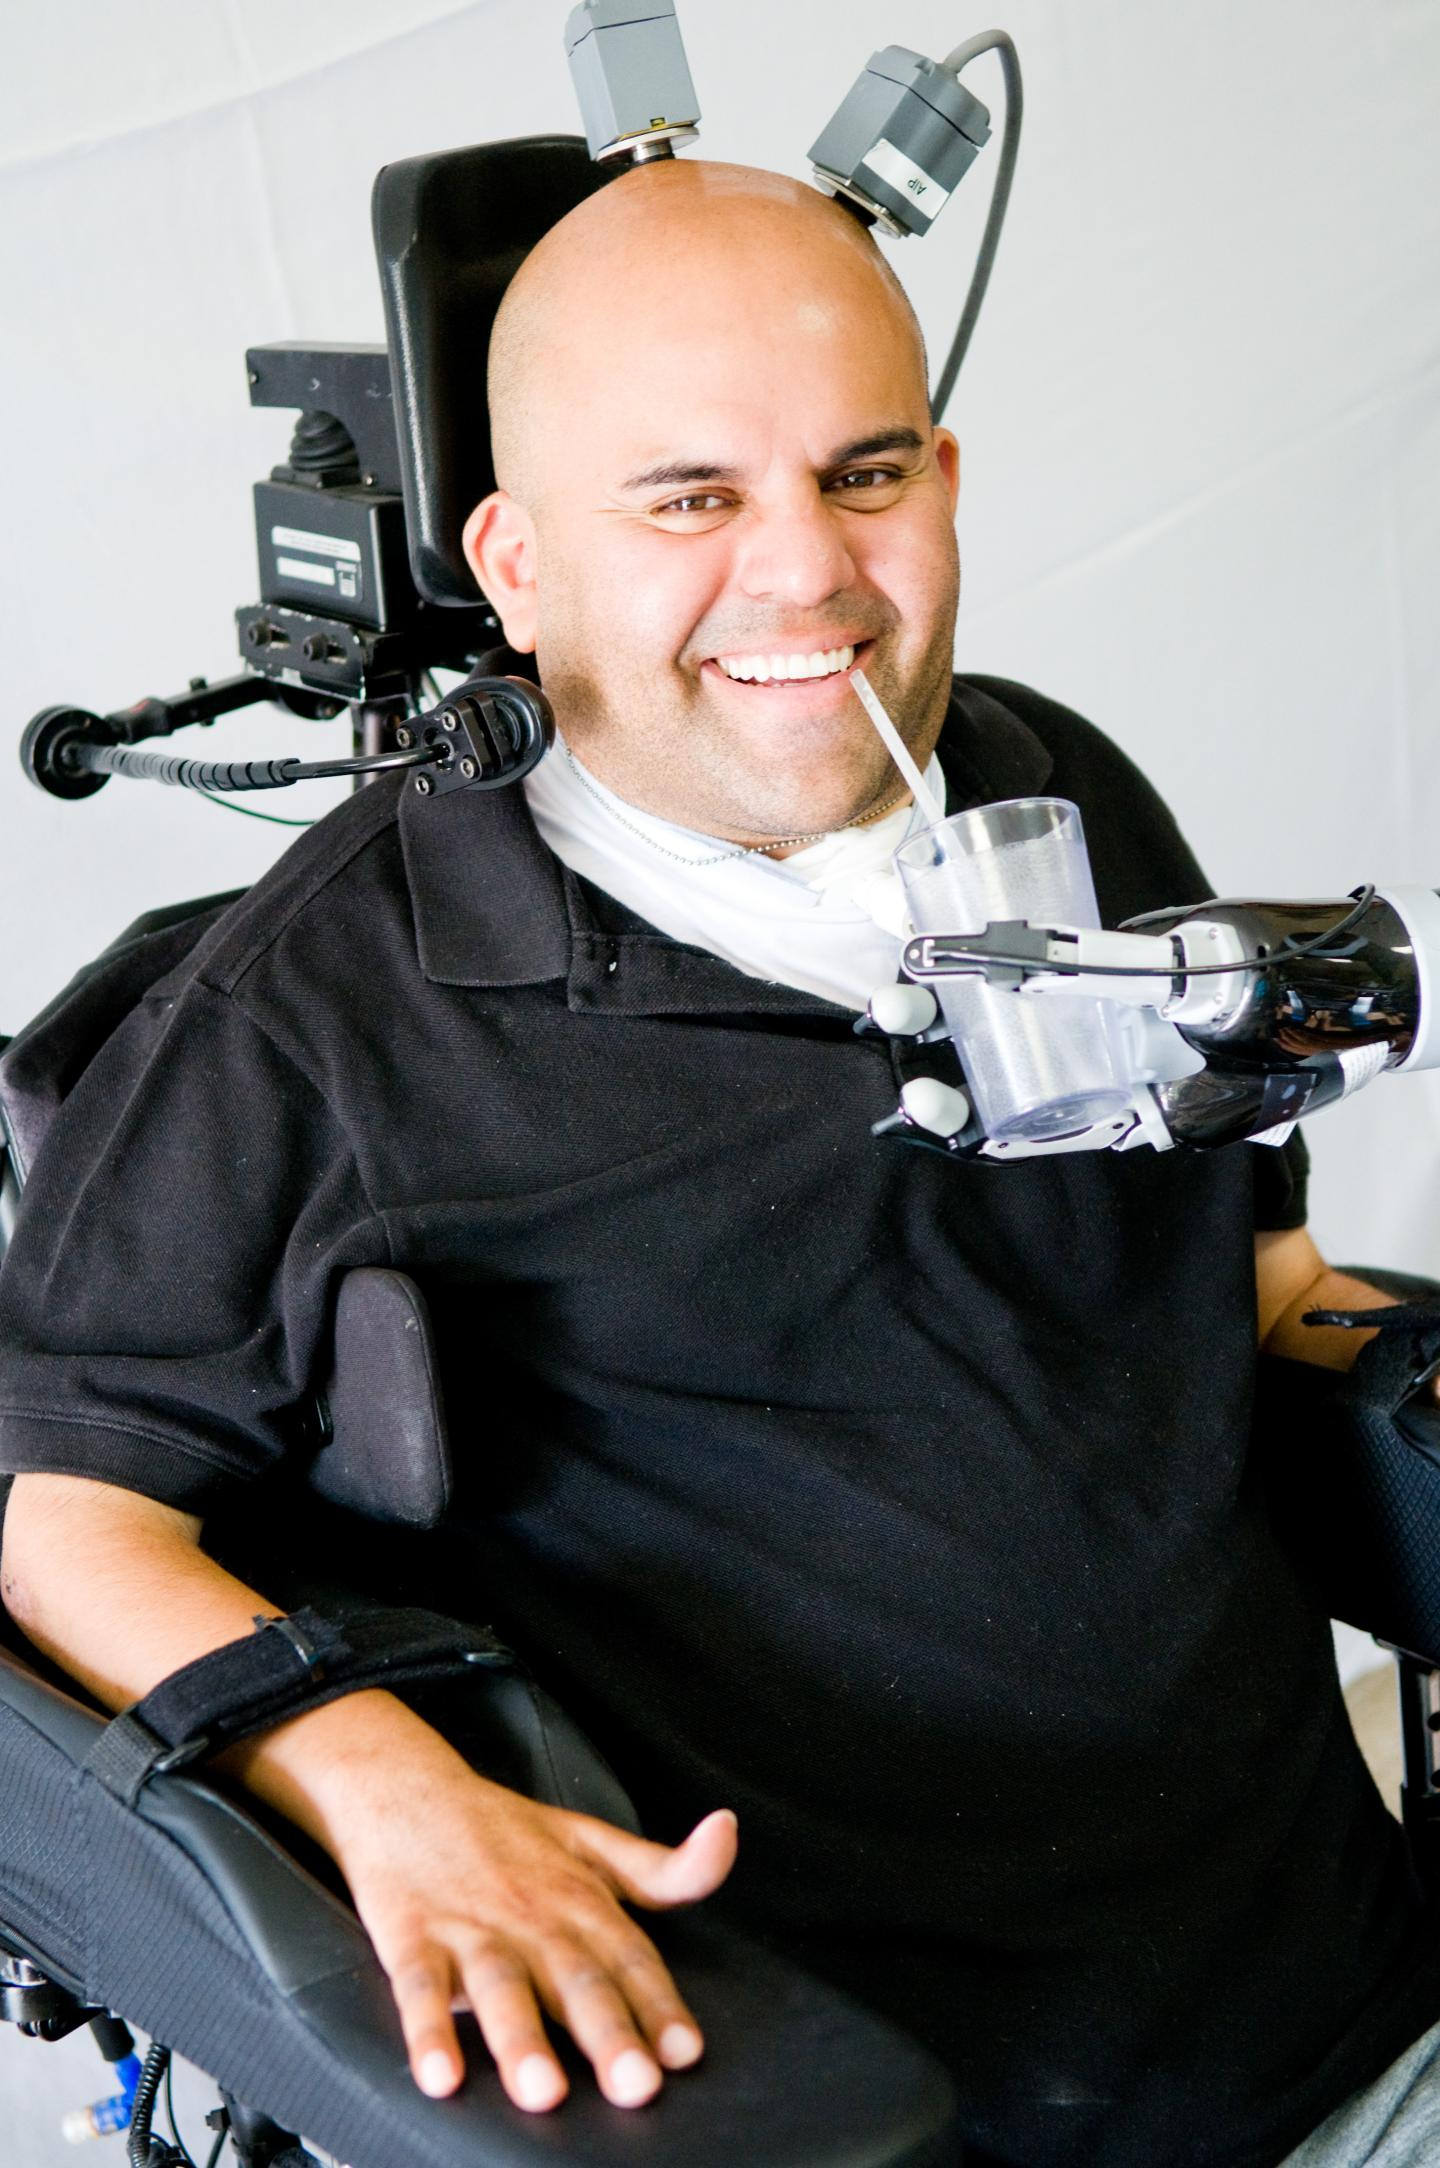 Neuroprosthetic allows patient to give himself a drink for the first time in 10 years.